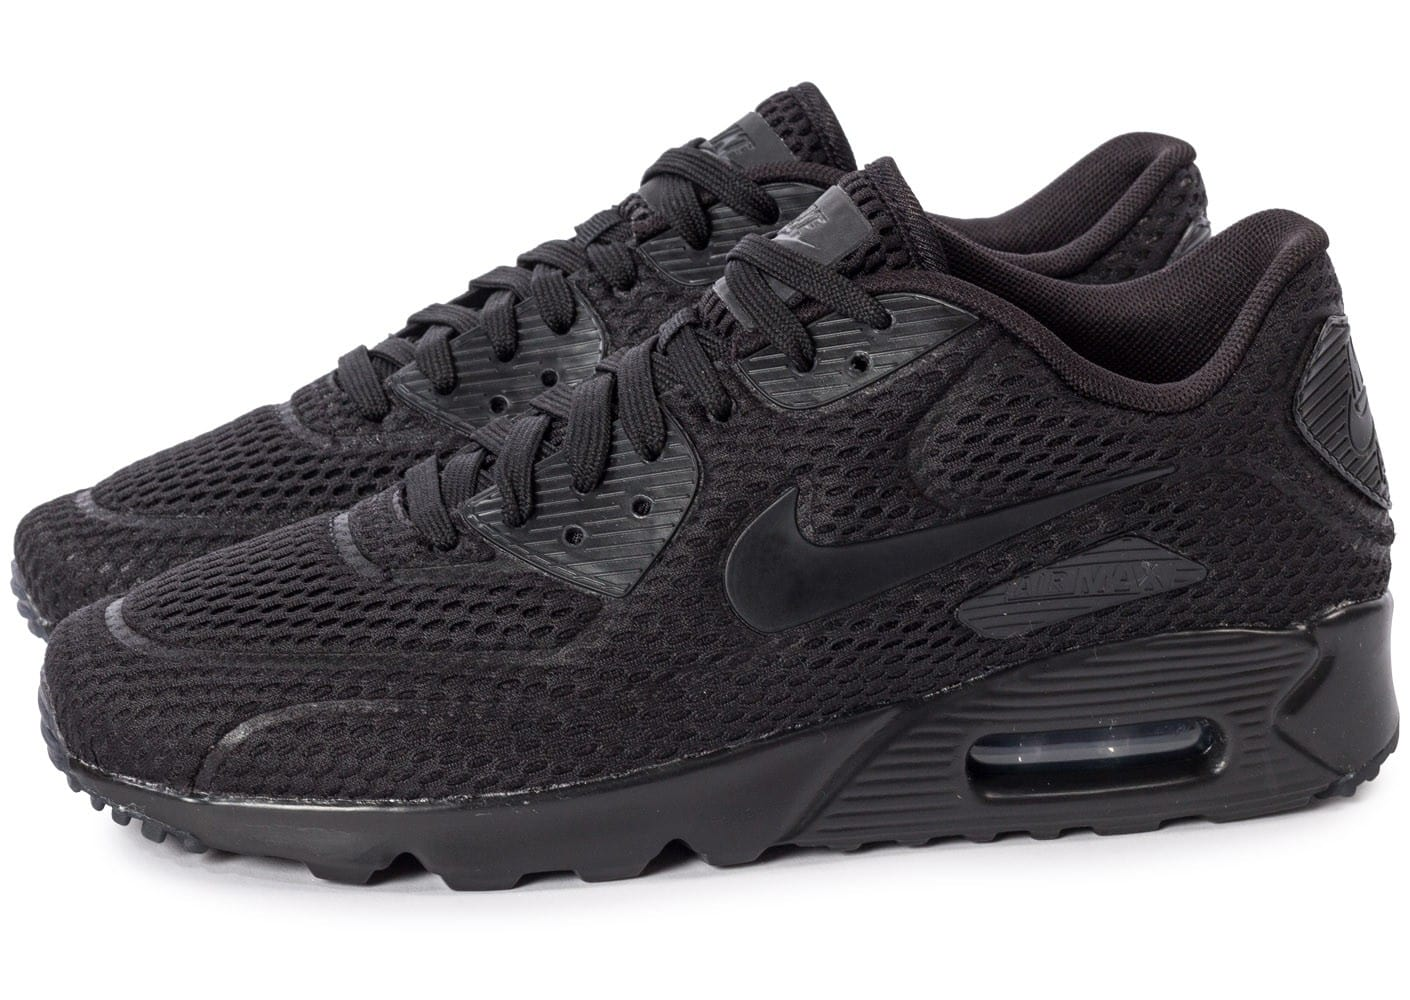 Soldes Basket Air Max 90 Ultra Essential Noire Homme